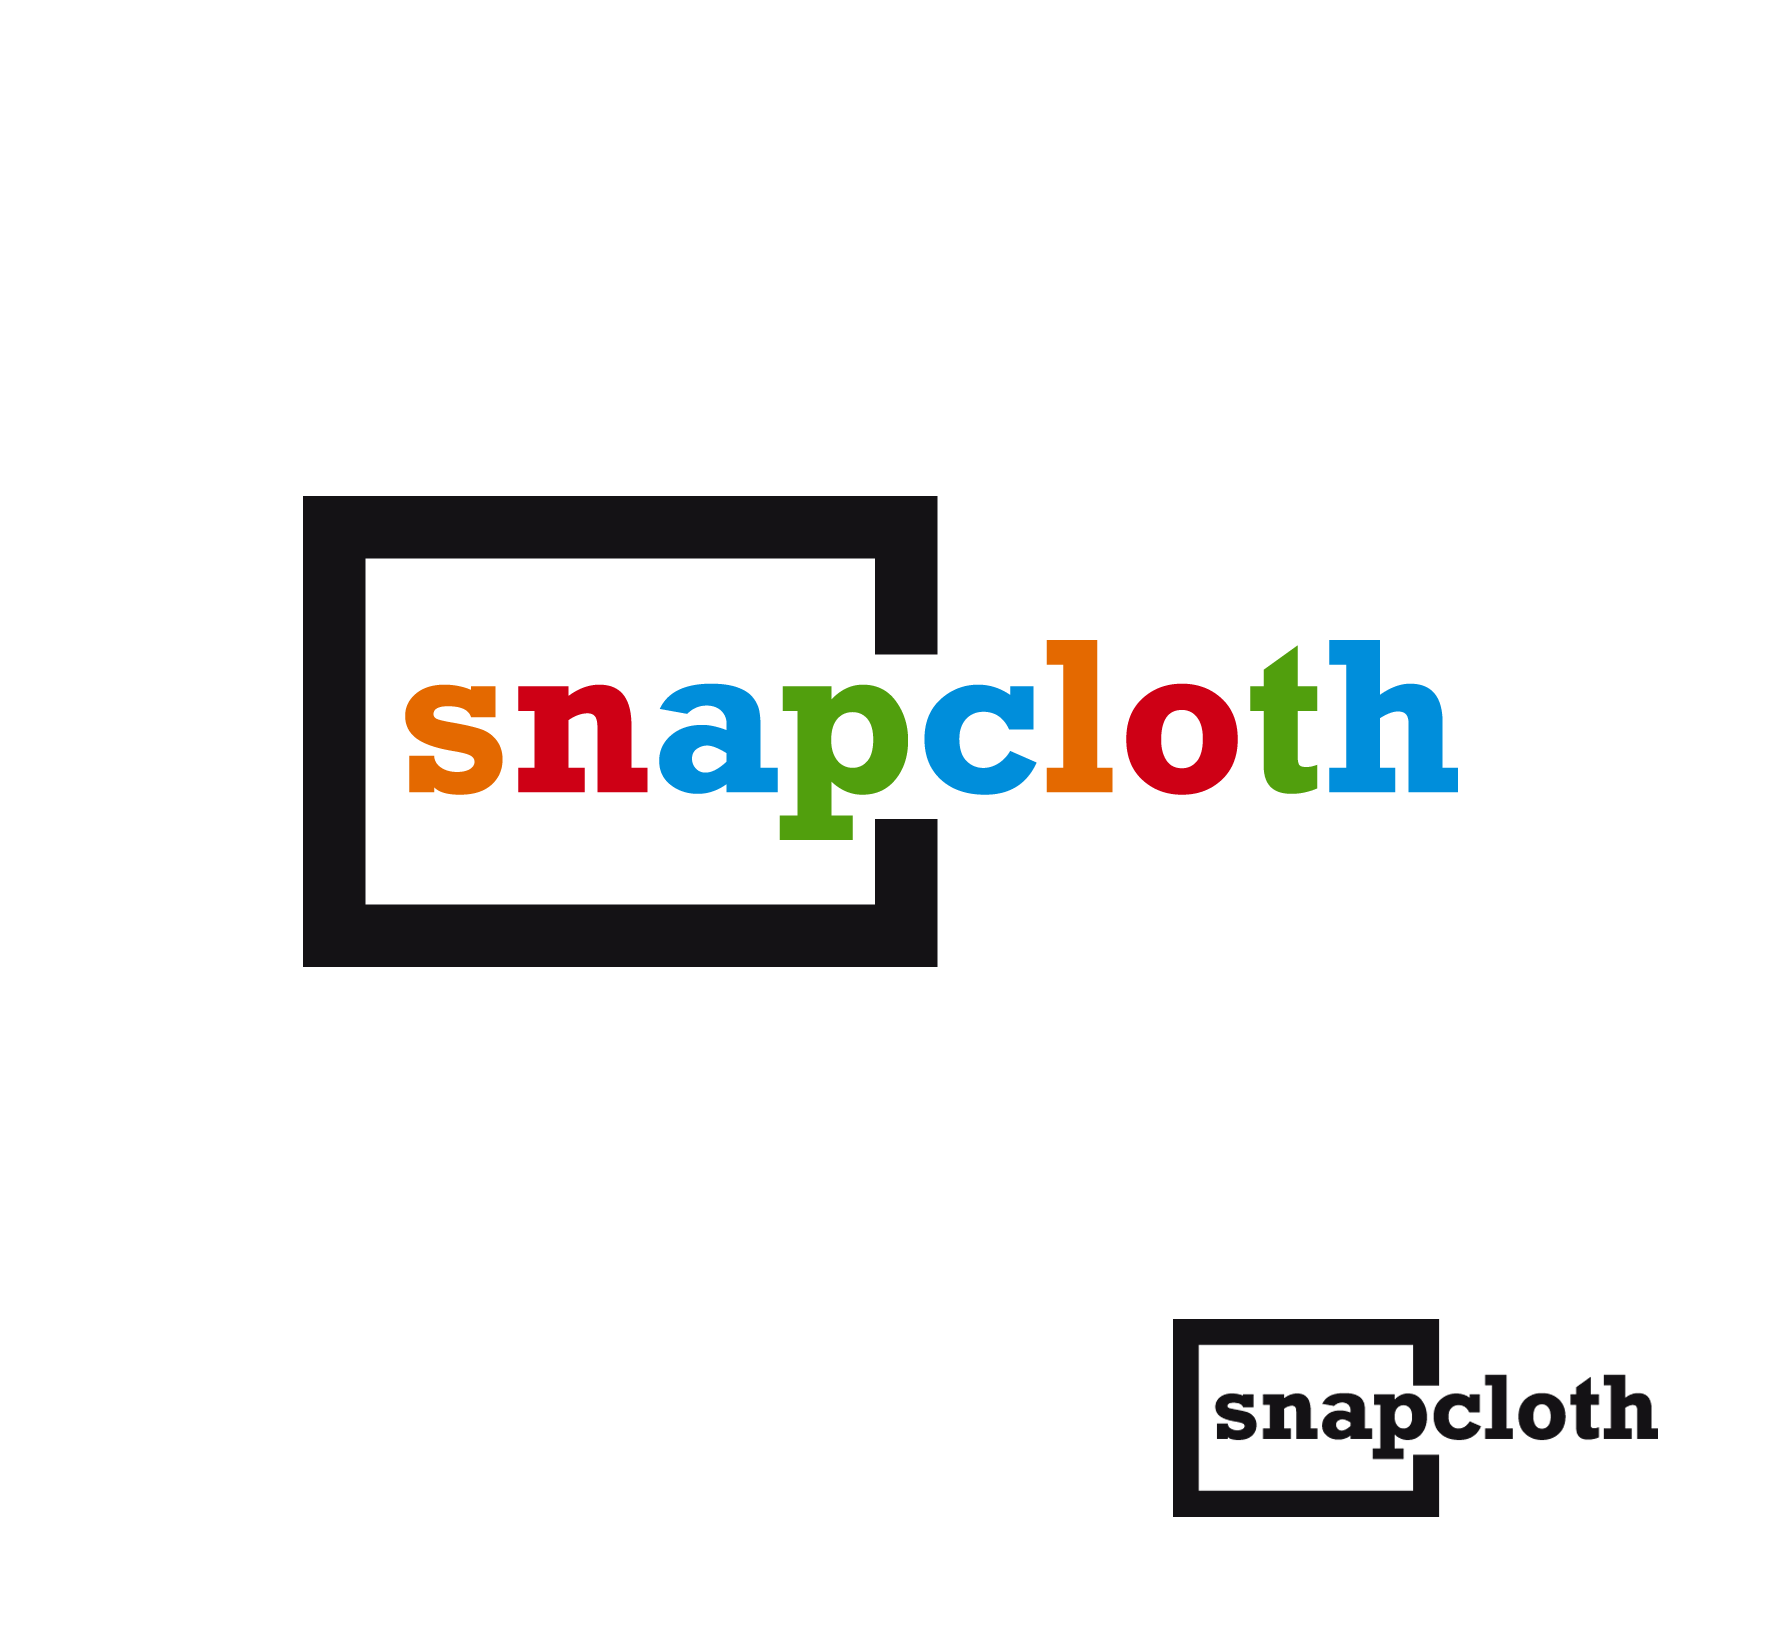 Logo Design by luna - Entry No. 23 in the Logo Design Contest Snapcloth Logo Design.